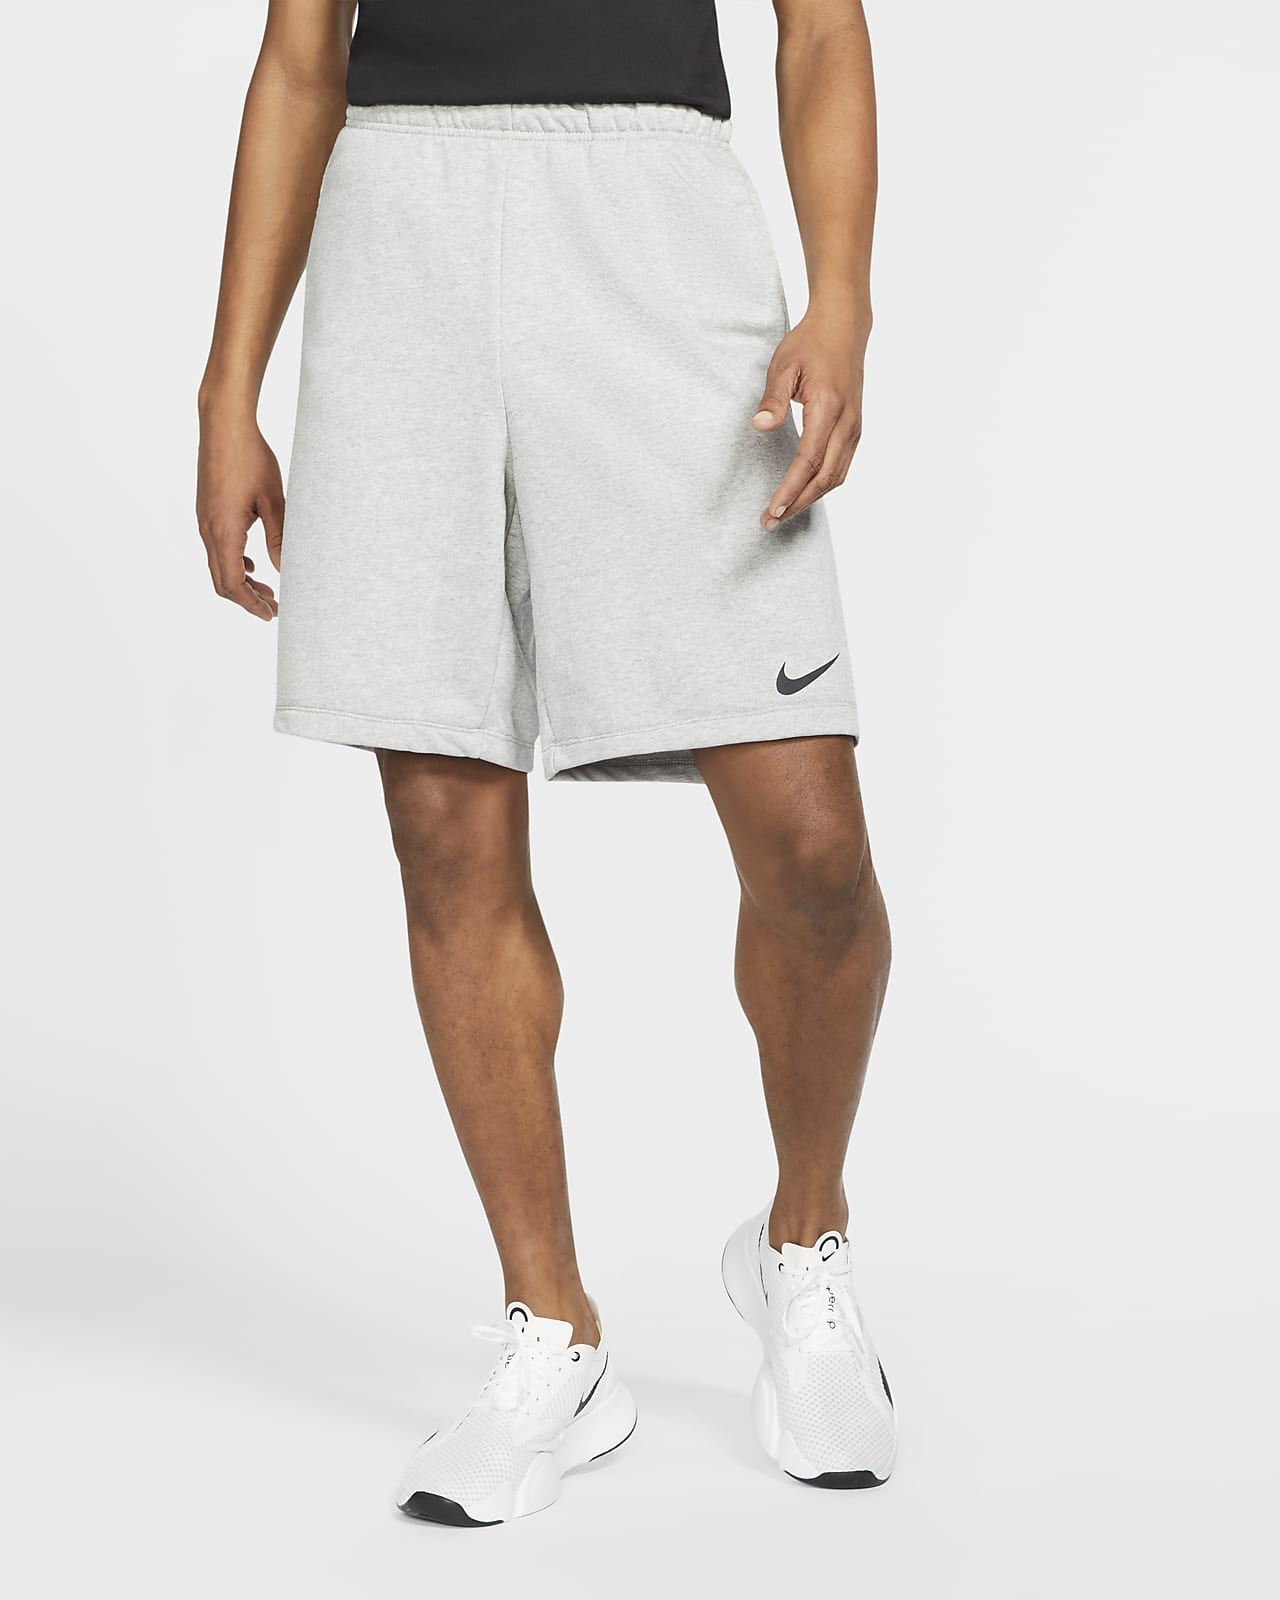 Nike Dri-FIT Herren-Trainingsshorts